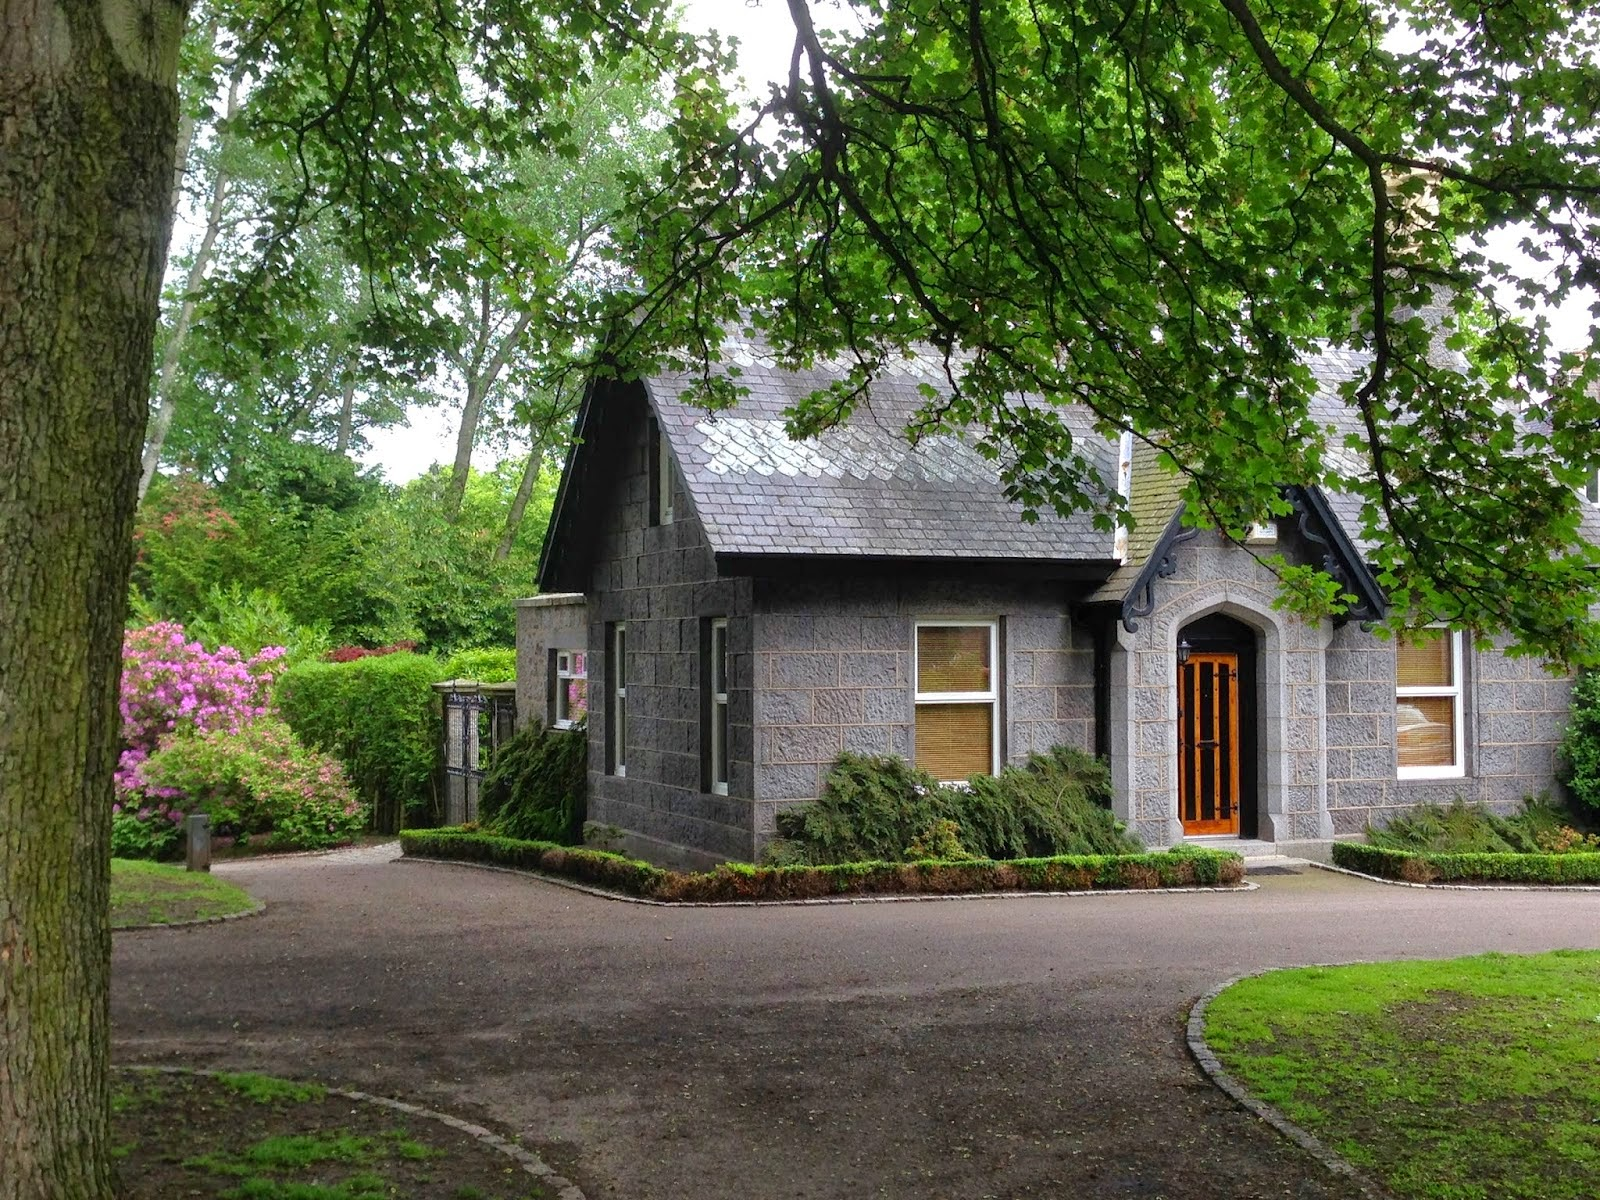 Finding Rental Property in Scotland